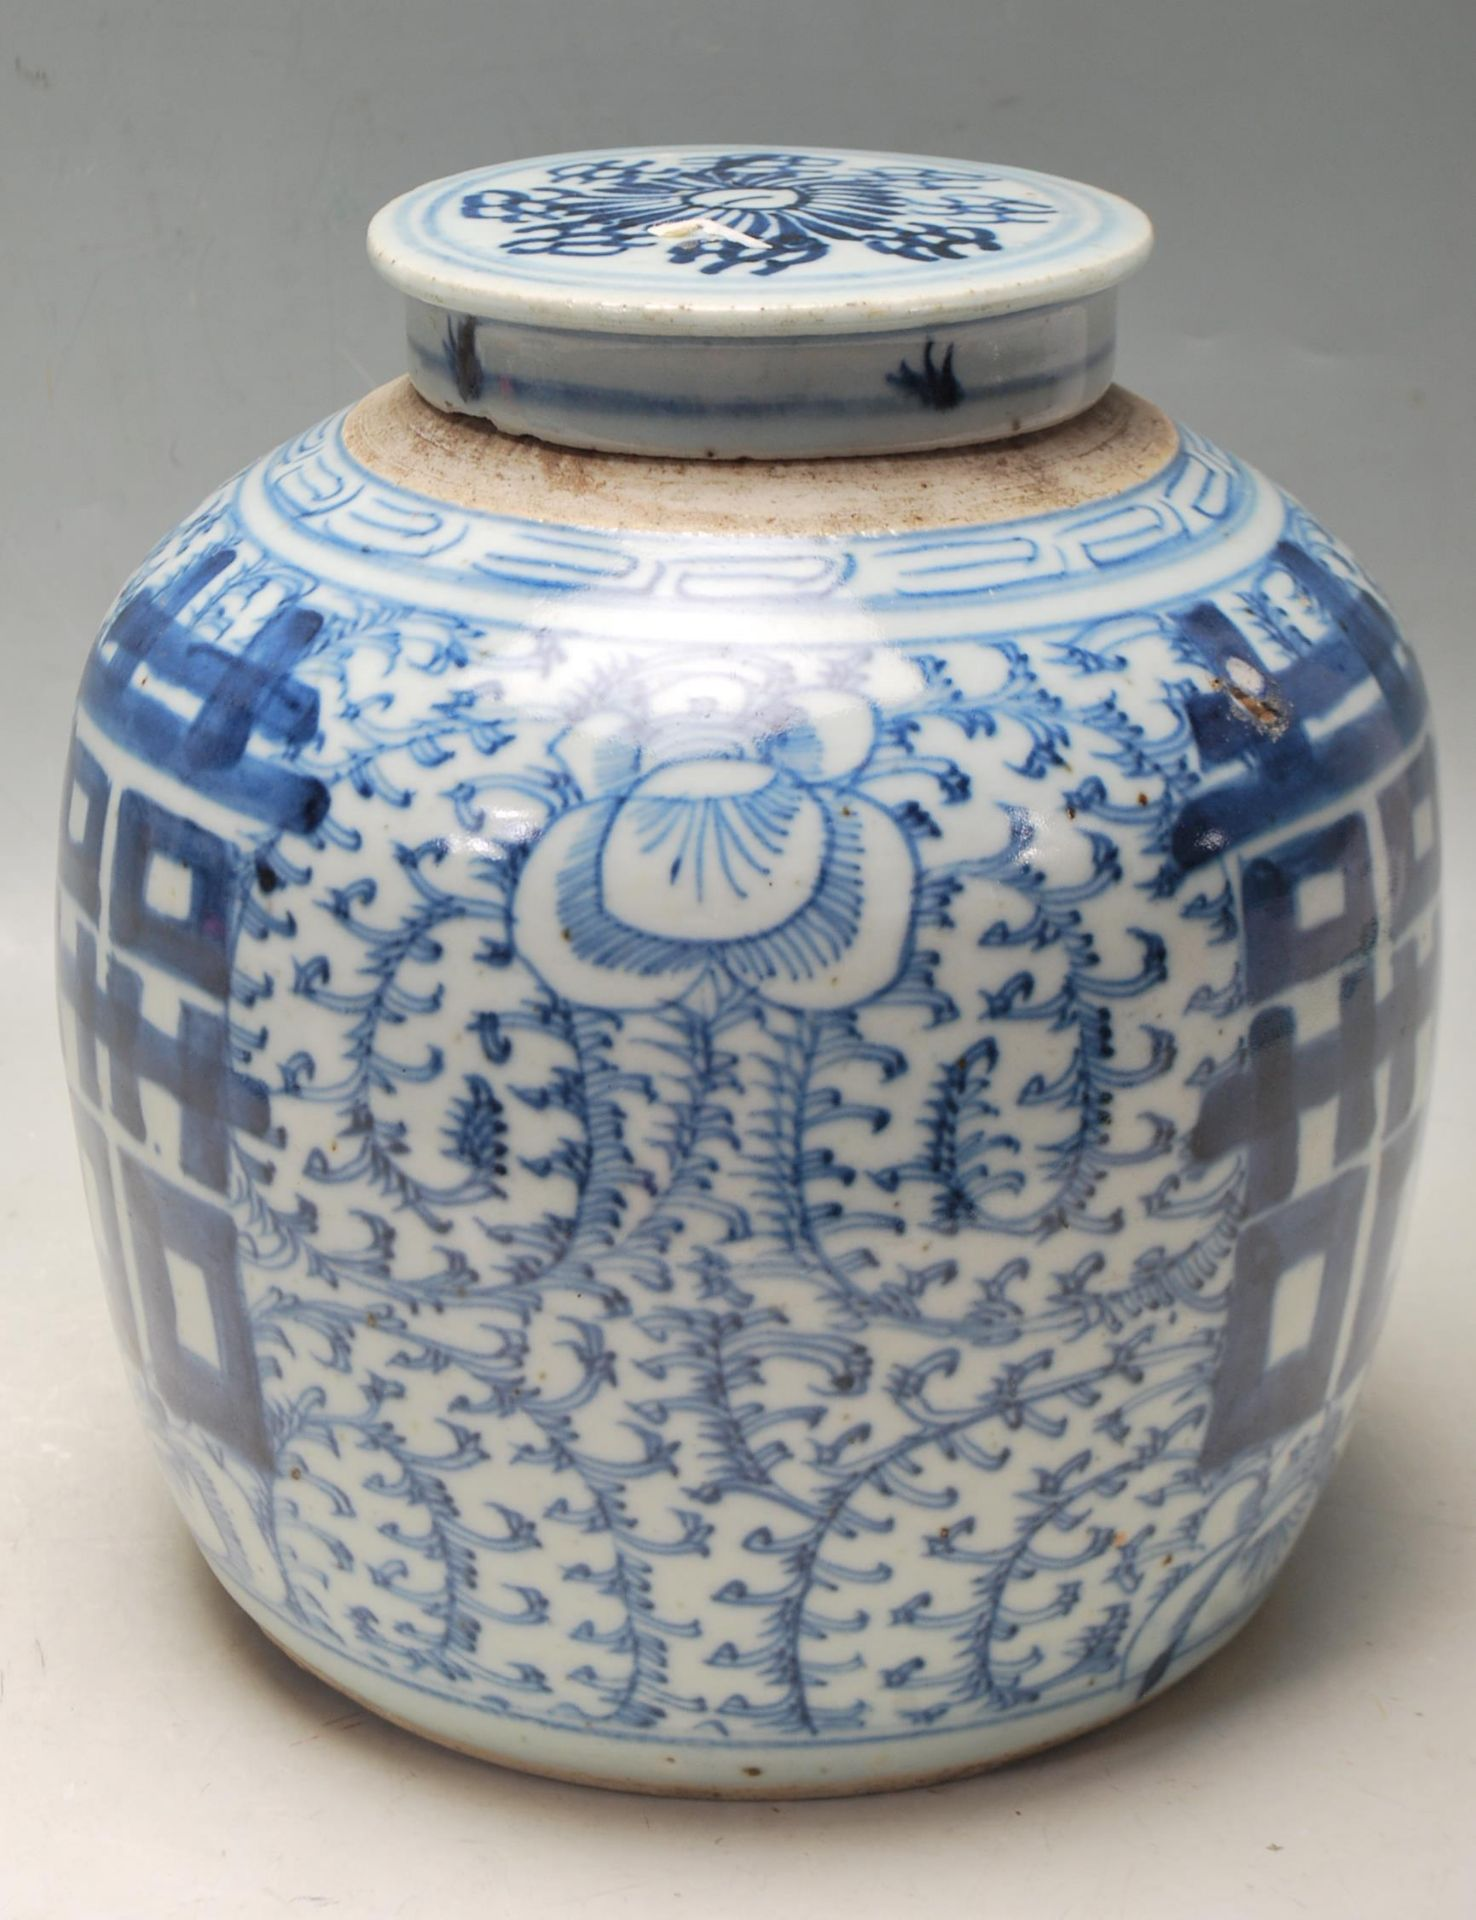 LATE 19TH CENTURY KANGXI CHINESE BLUE AND WHITE VASE - Image 4 of 9